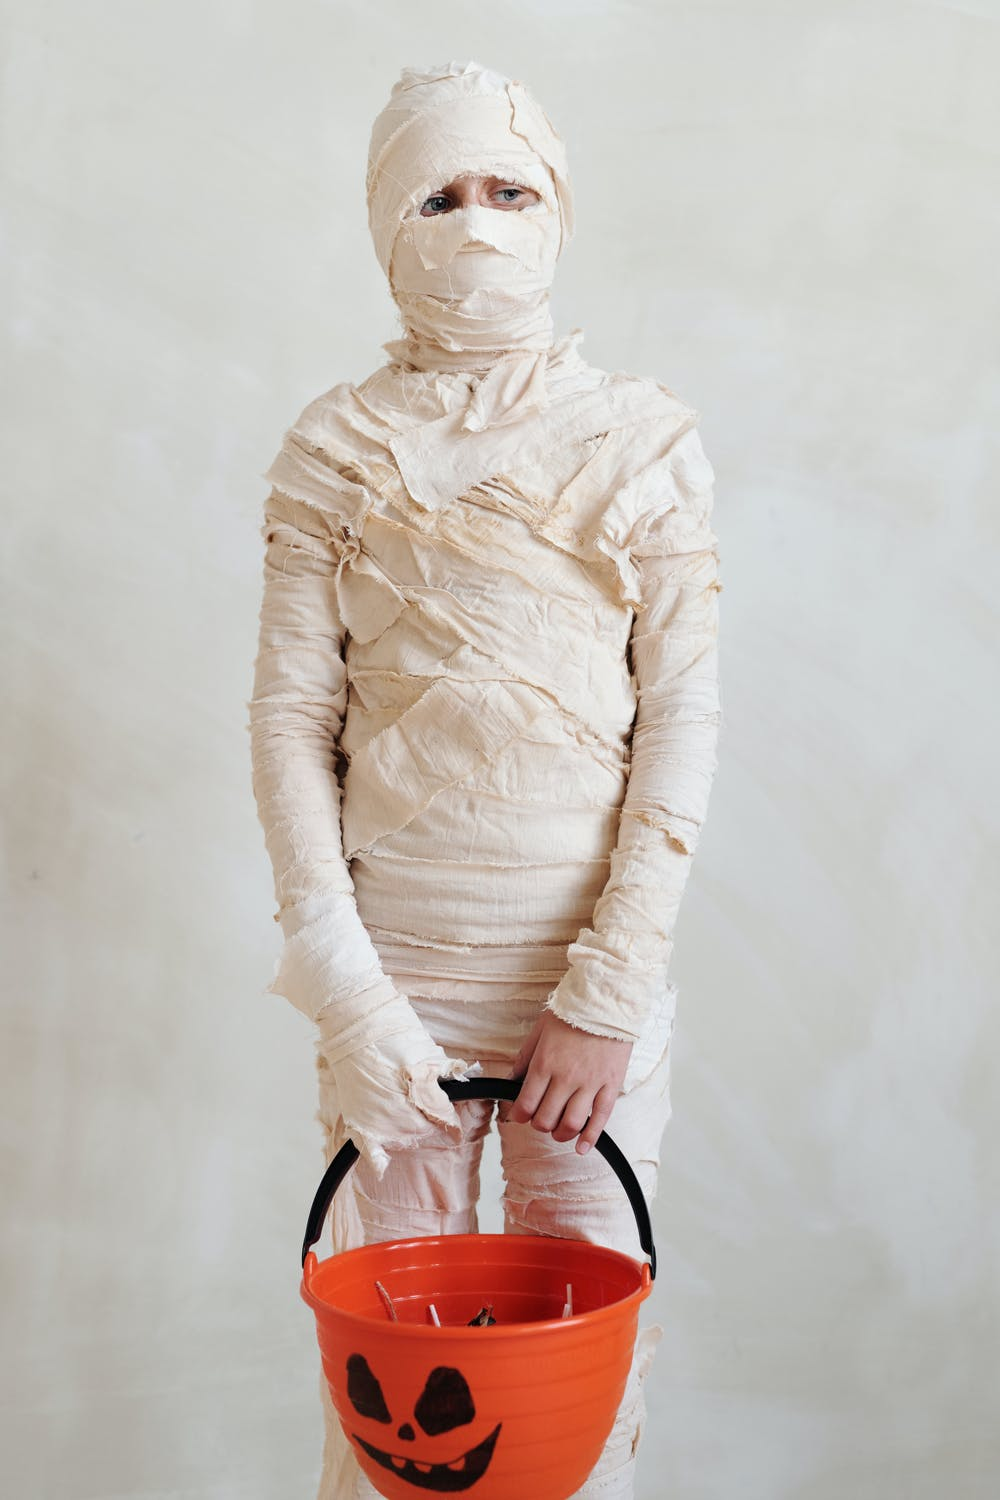 kid dressed up as a mummy